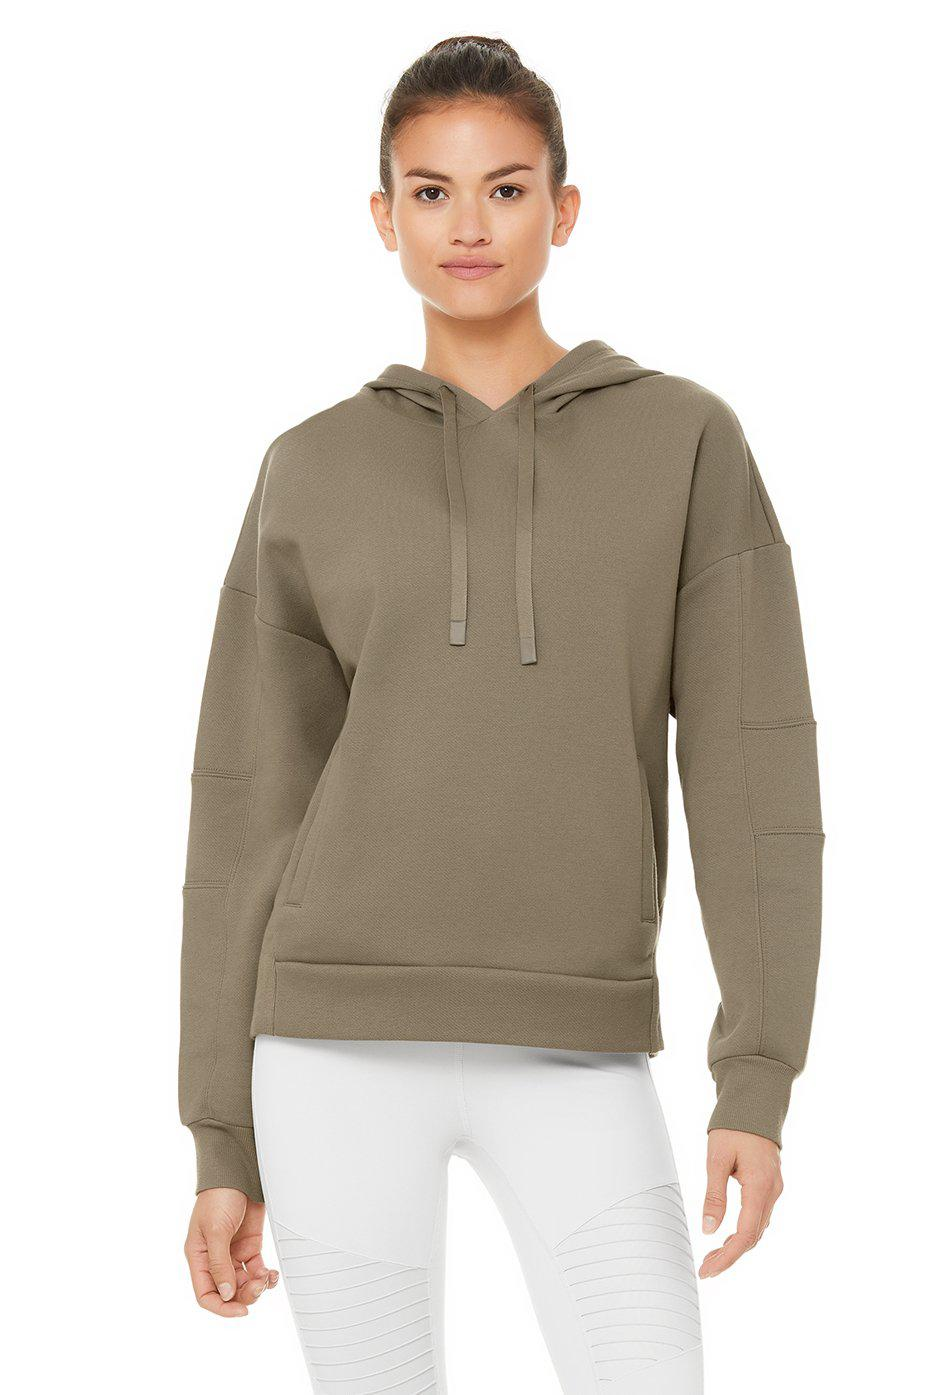 Interval Hoodie - Olive Branch